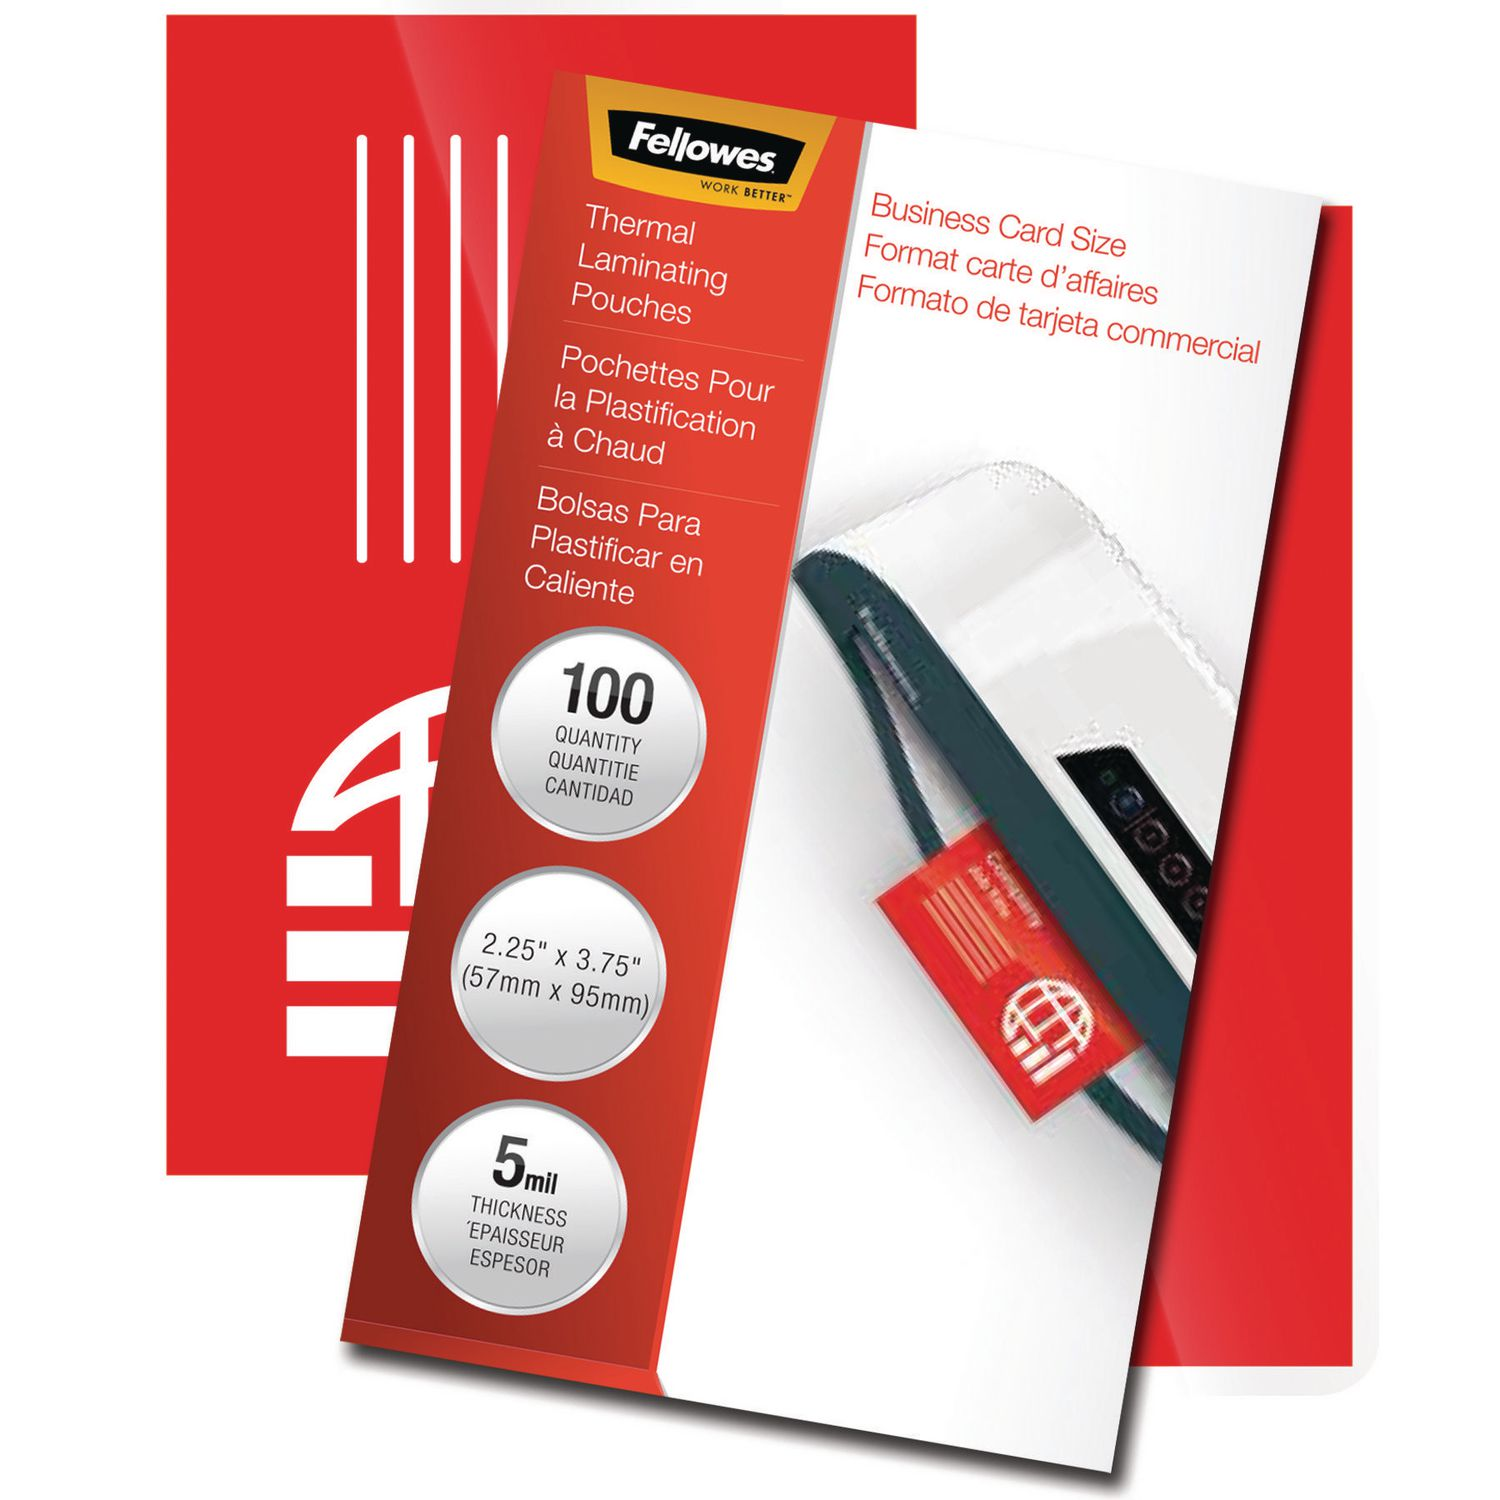 Fellowes Thermal Laminating Pouches - Business Card, Pack of 100 ...